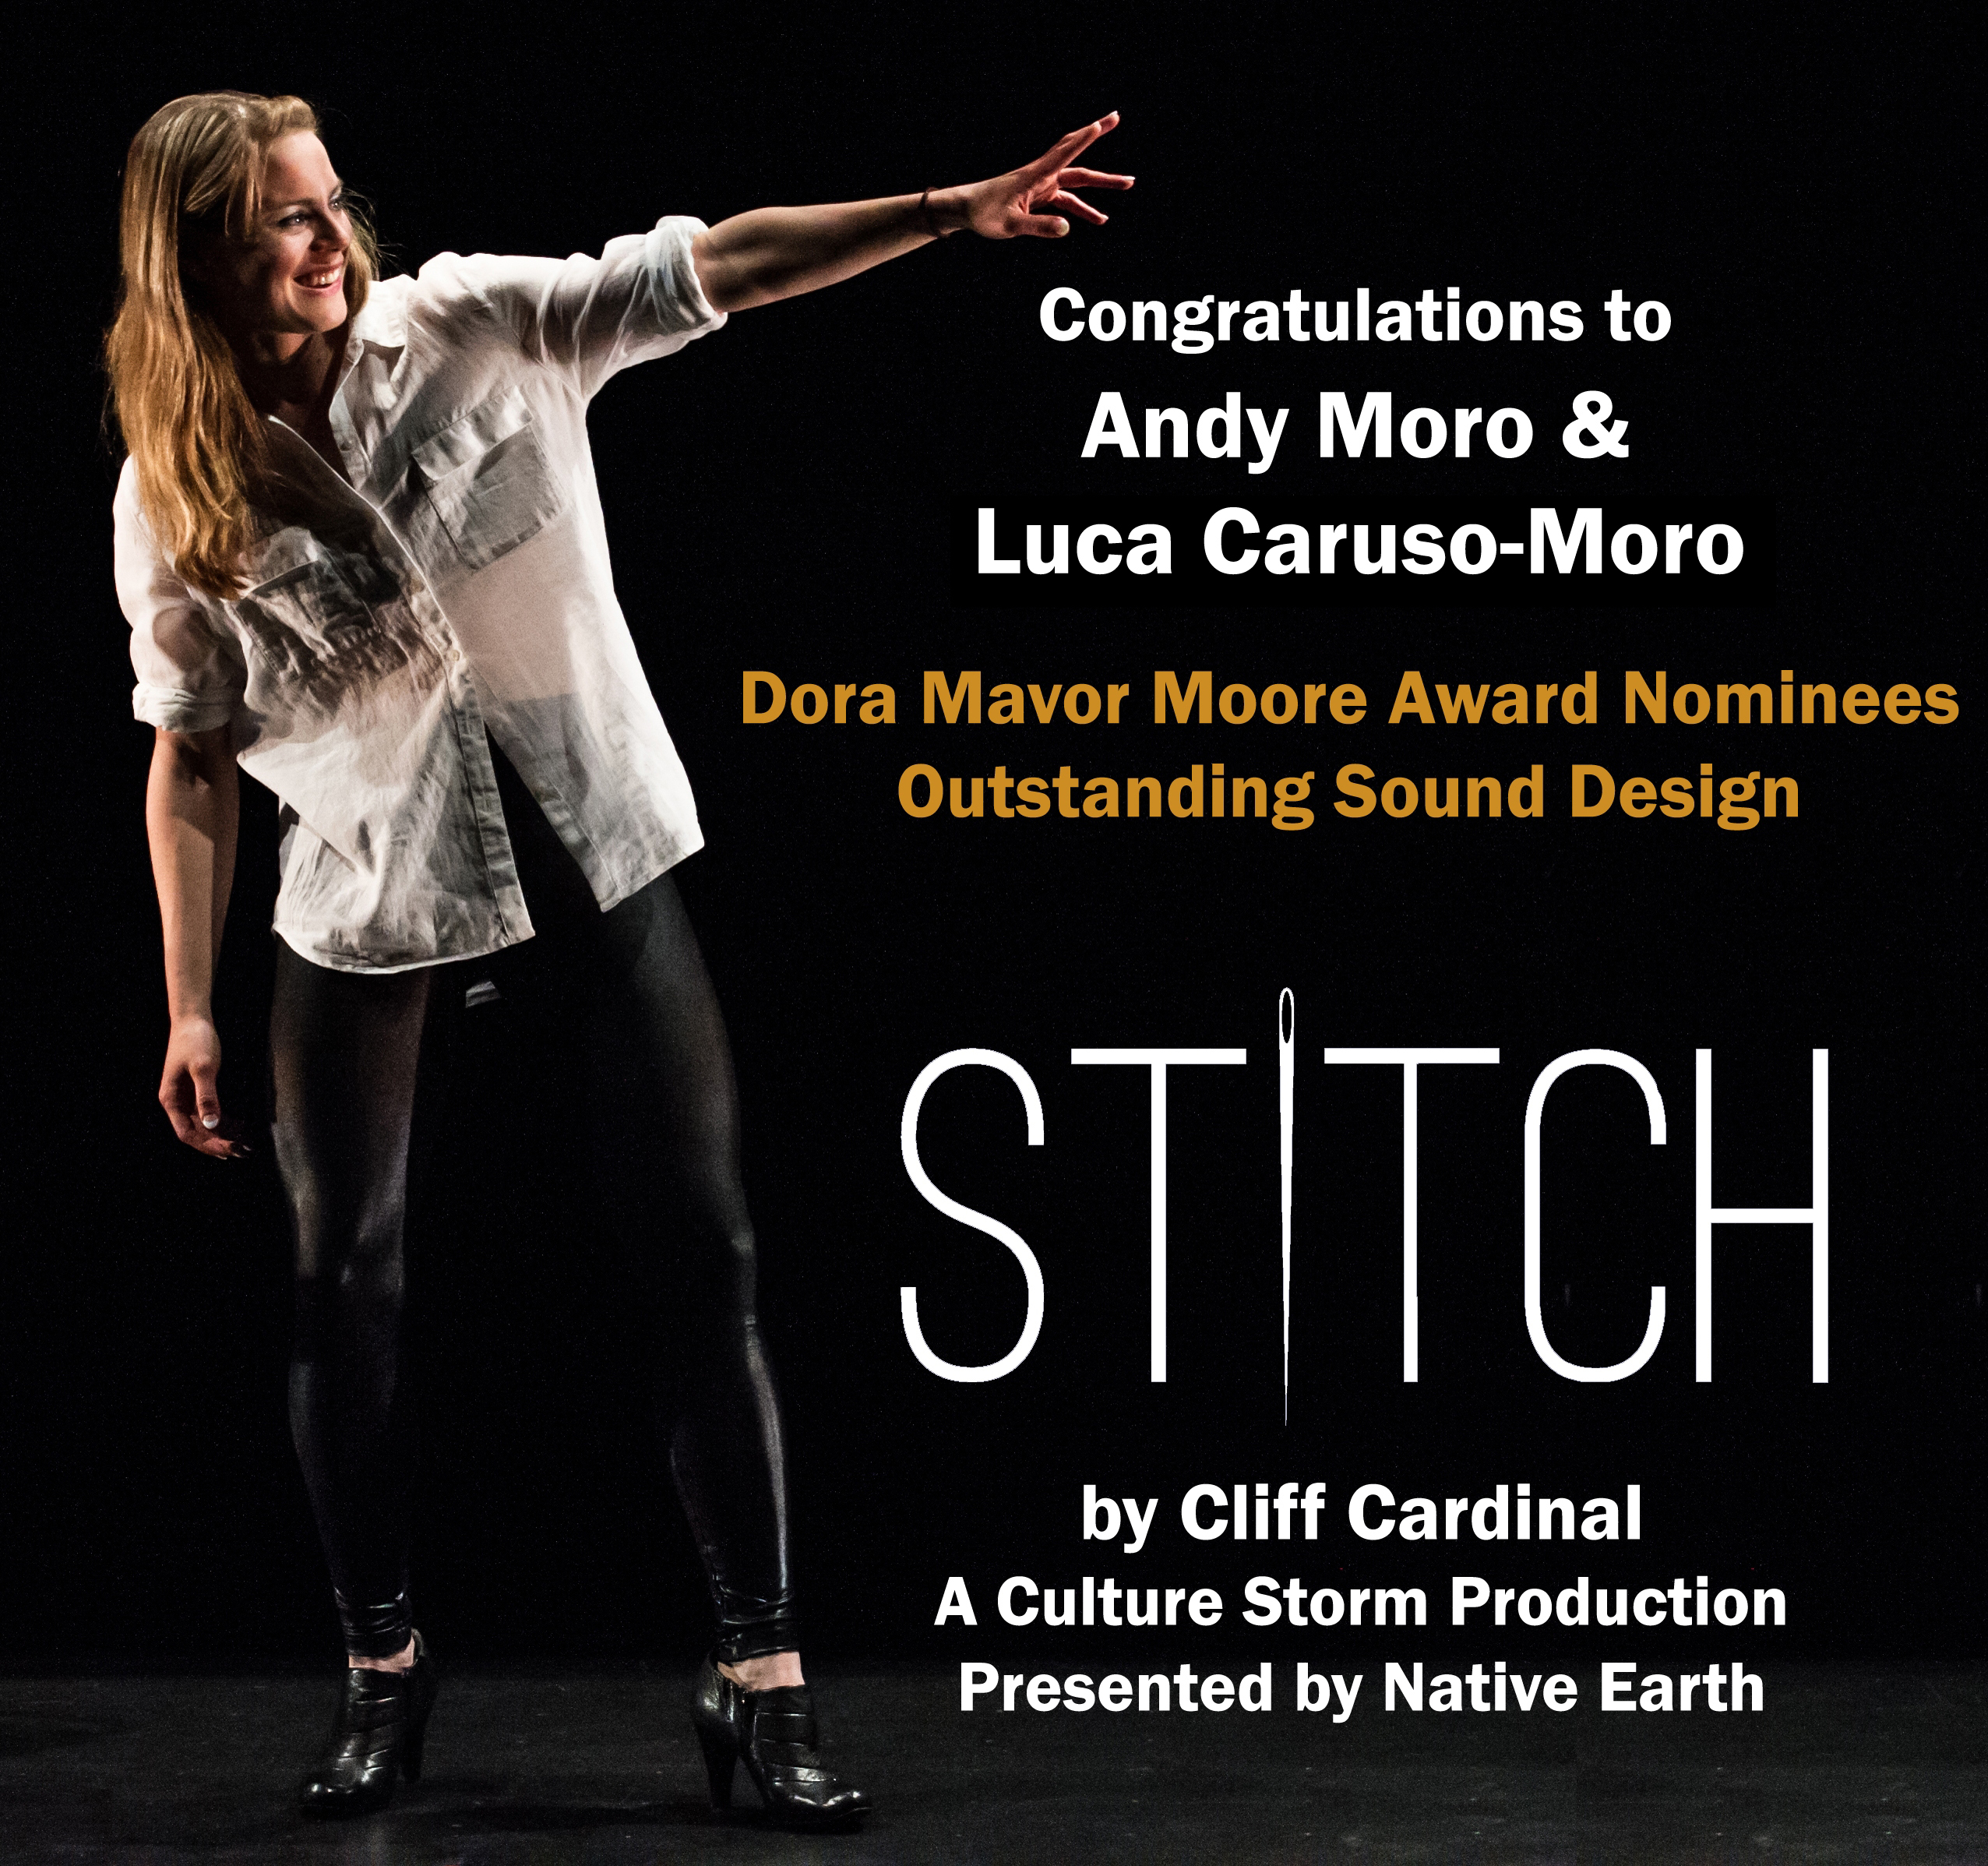 Stitch Nomination Announcement